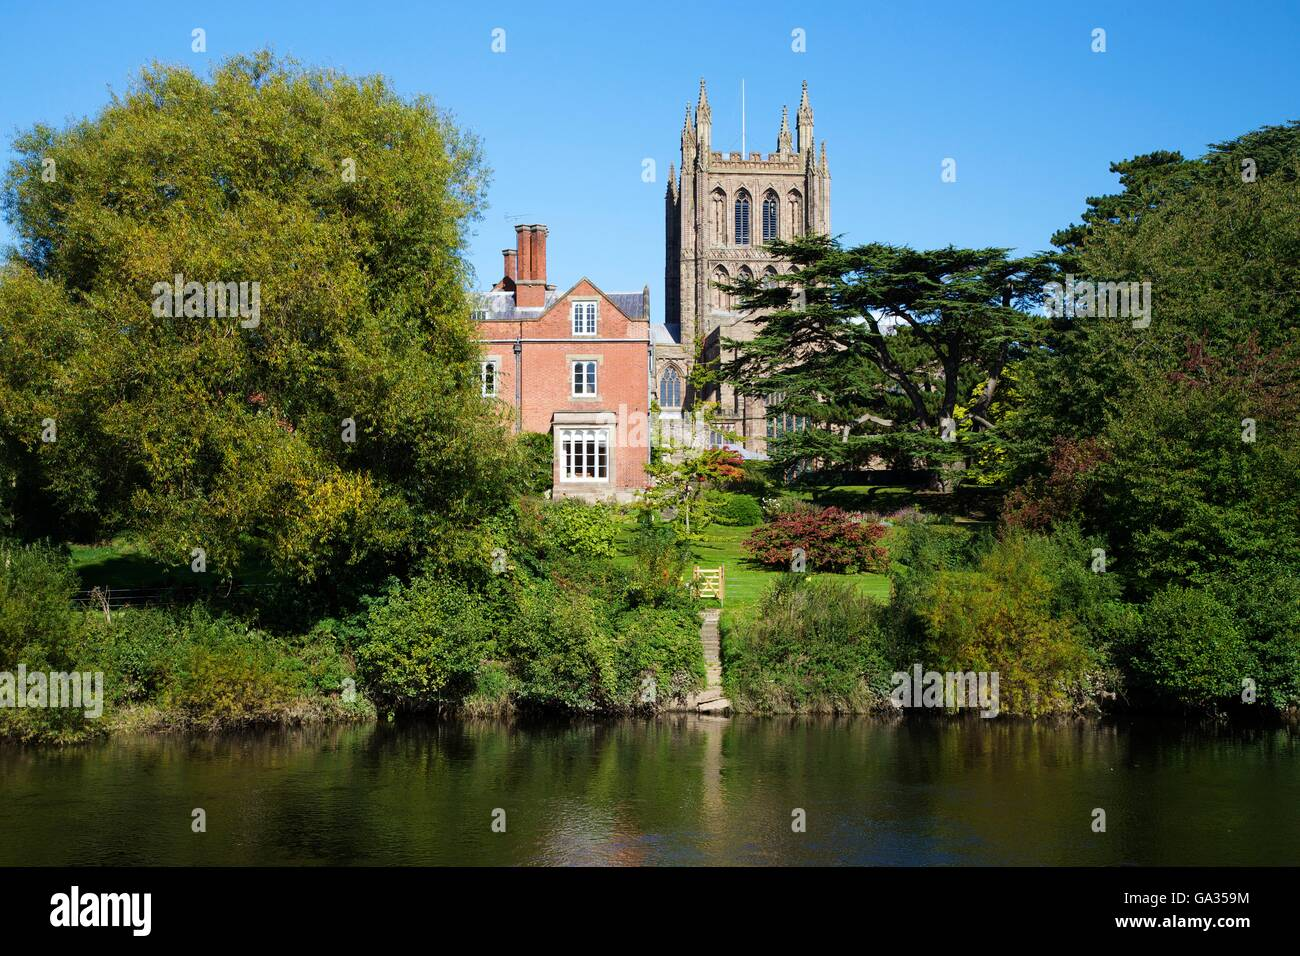 Hereford Cathedral Bishops Palace and River Wye, Herefordshire, England, UK, GB, Europe - Stock Image